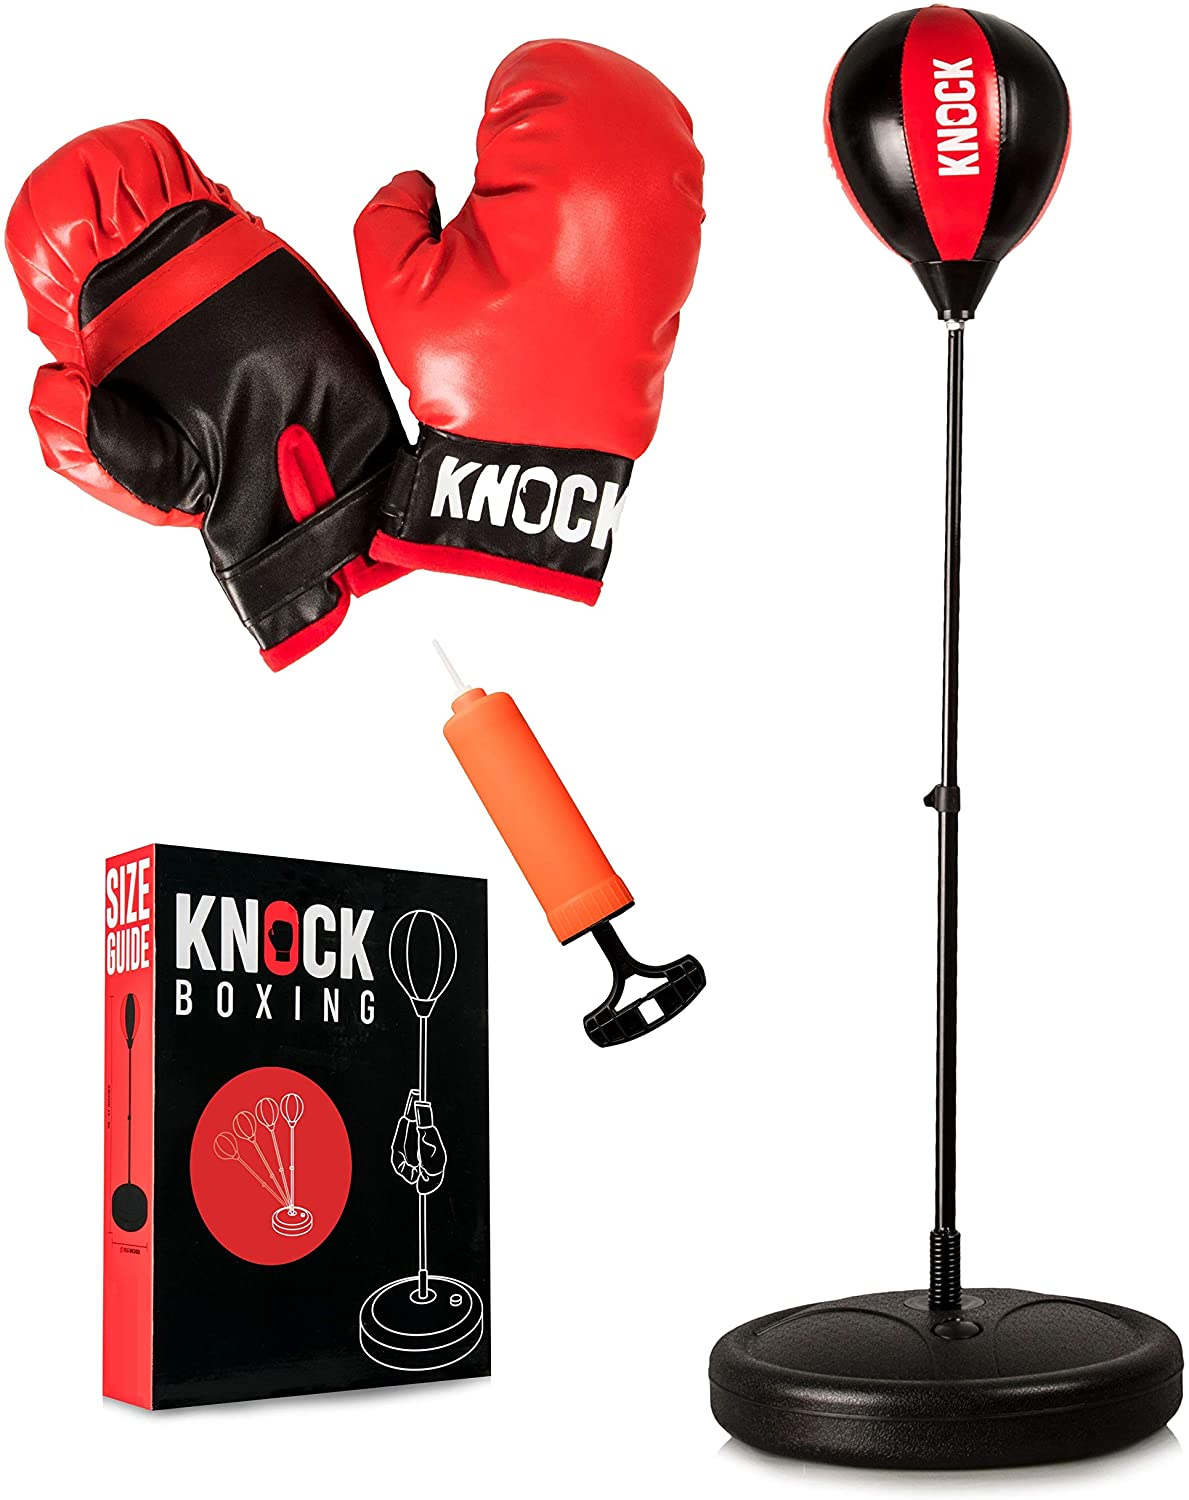 Indoor Punching Bag for Kids - Home Gym Youth Workout Equipment - Complete Boxing Set Includes Gloves & Small Pump - Free Standing Bag with Adjustable Height - Great Gift Idea for Boys or Girls